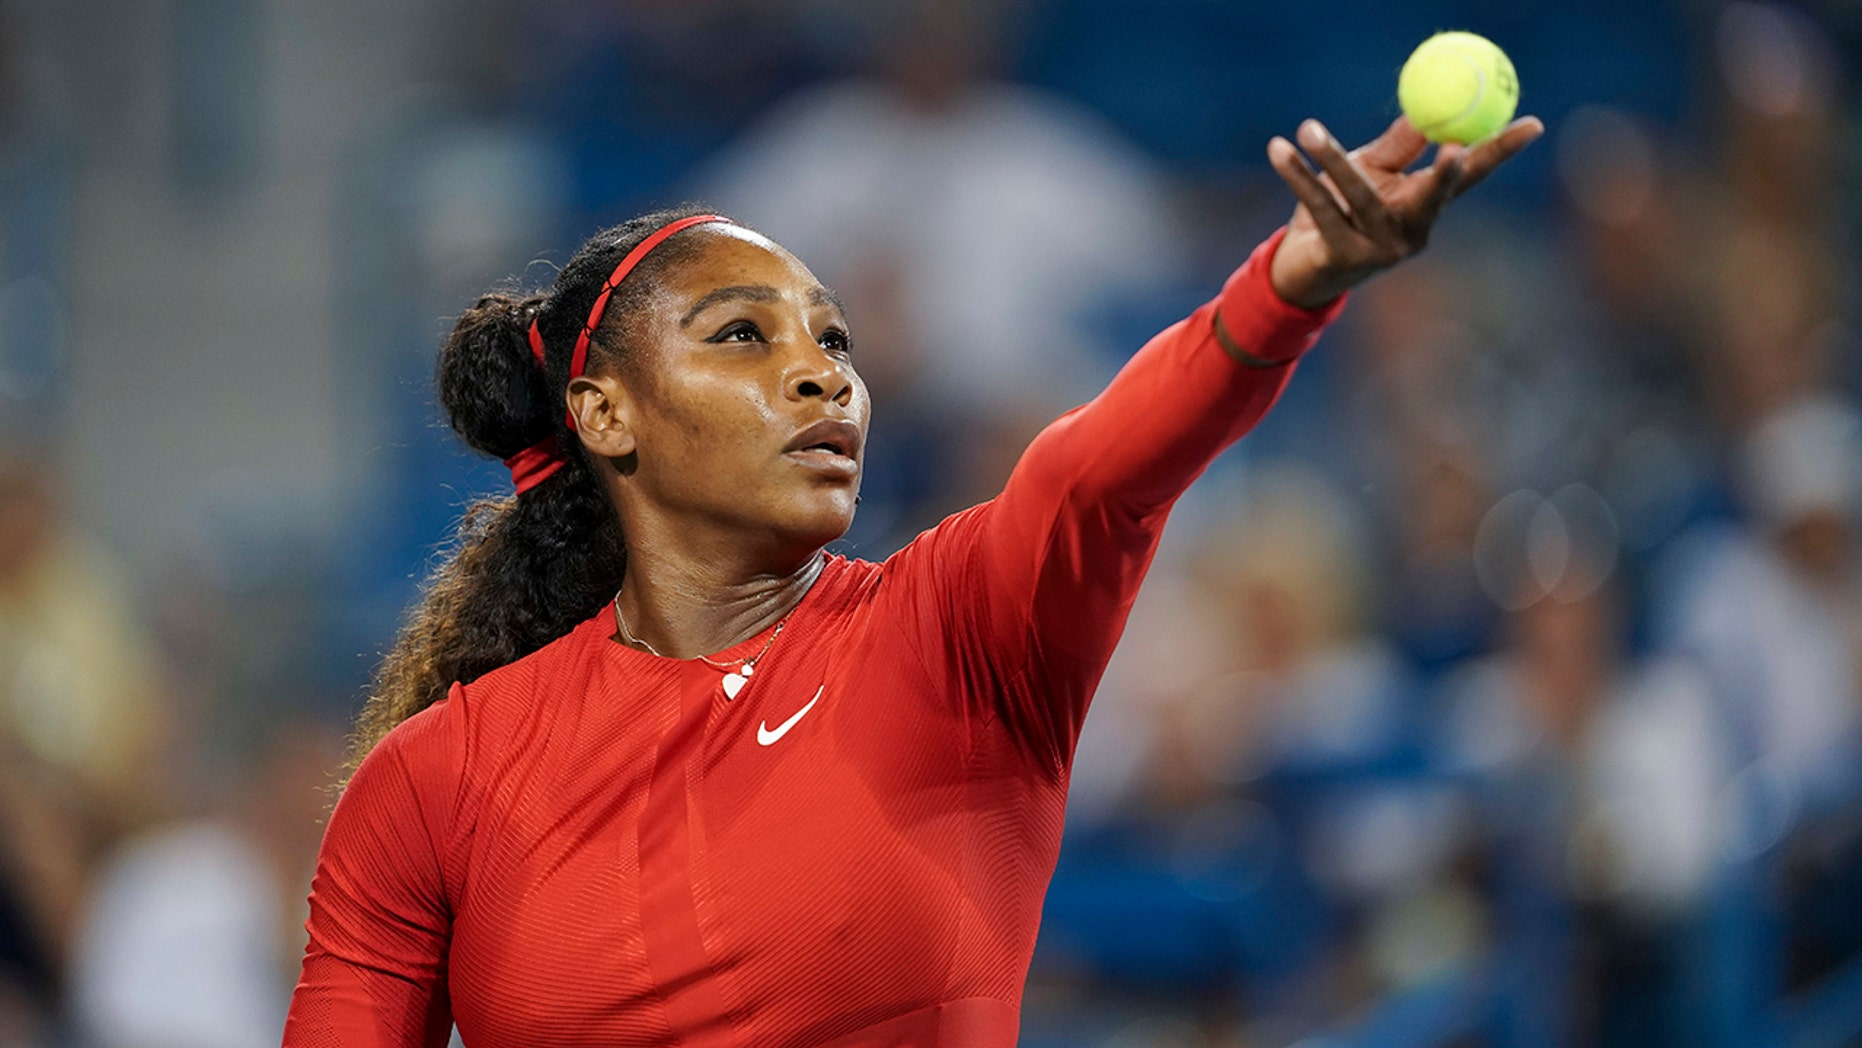 Serena Williams serves to Petra Kvitova, of the Czech Republic, at the Western & Southern Open tennis tournament.